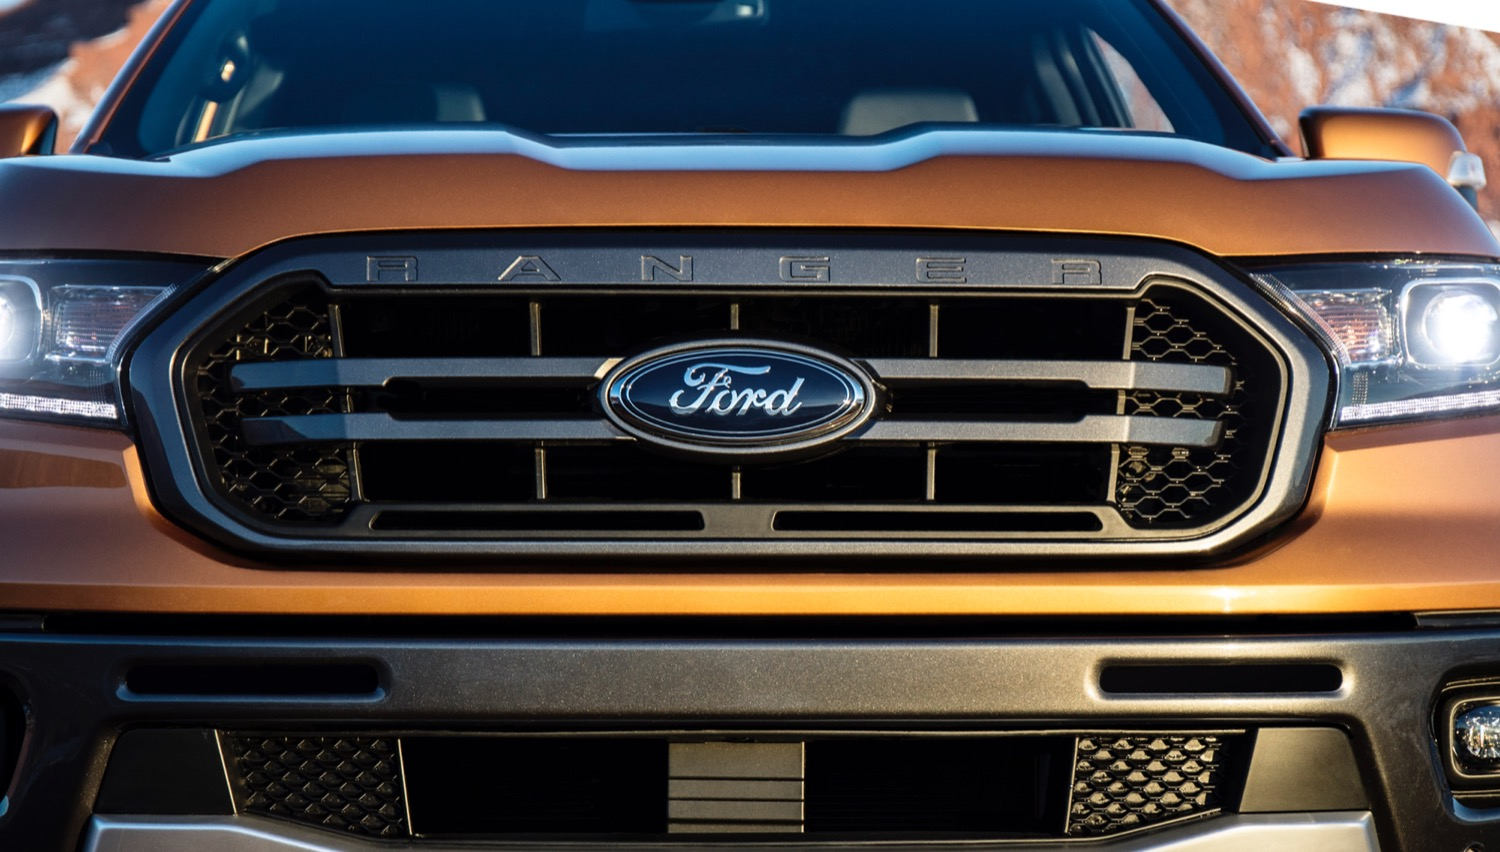 2019-Ford-Ranger-Lariat-FX4-Super-Crew-Exterior-010-front-end-with-Ford-Logo.jpg